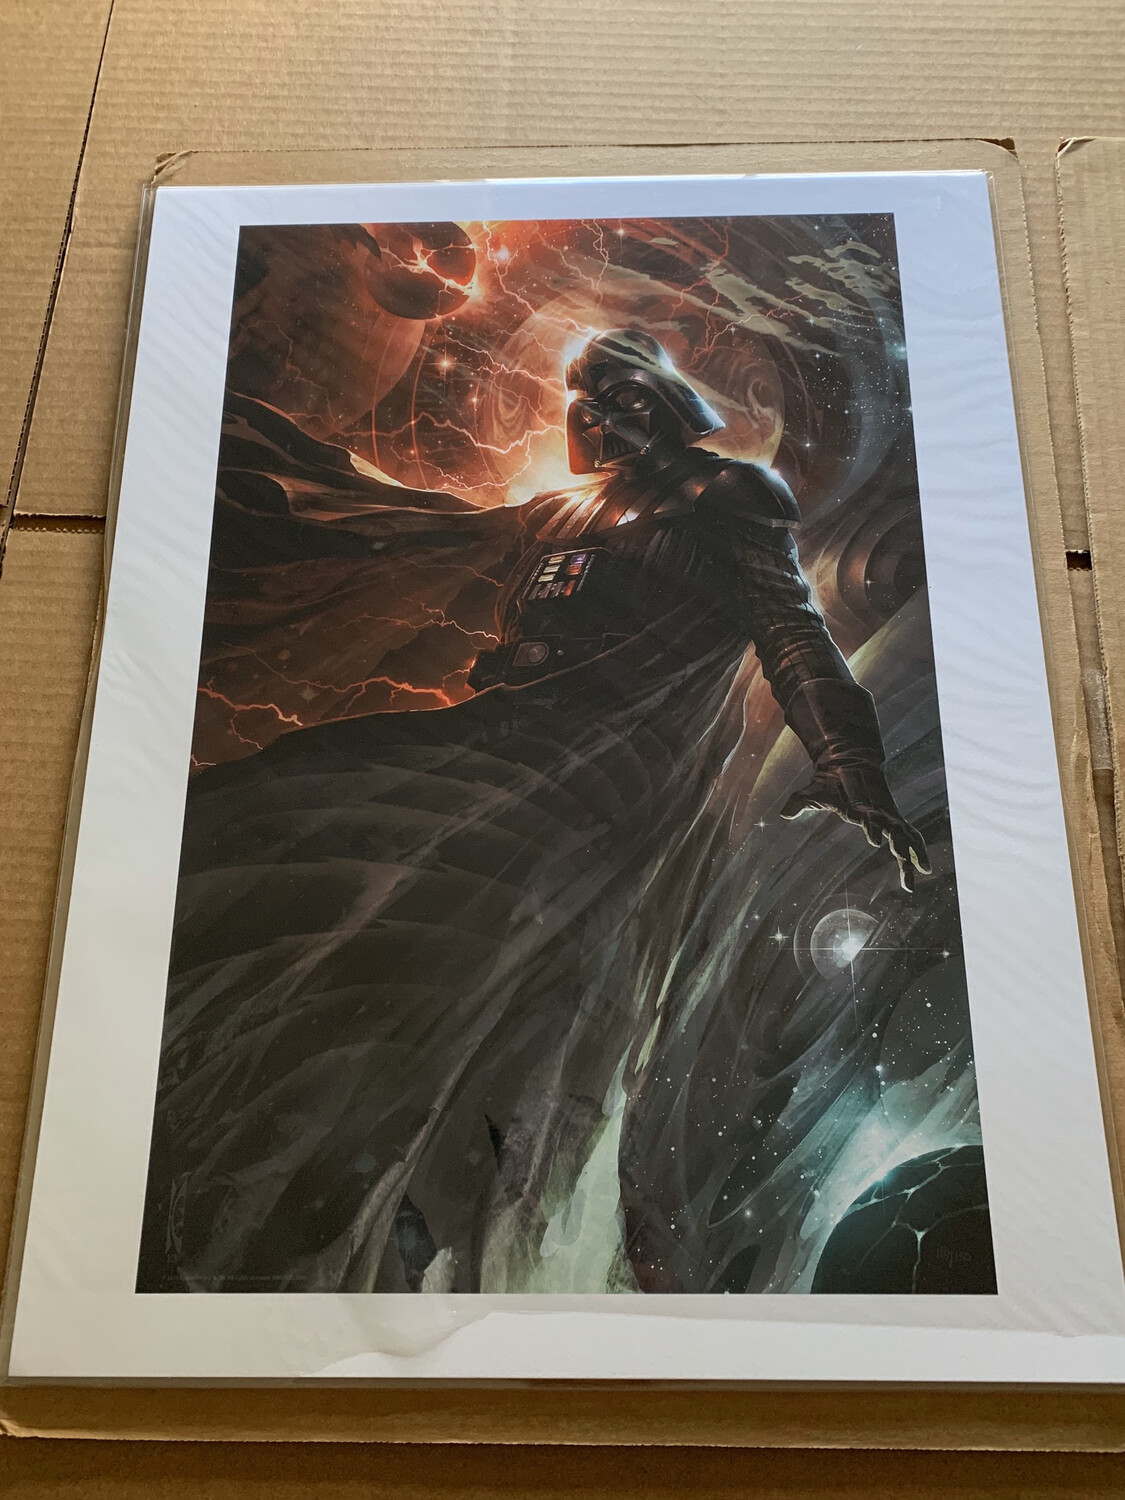 CENTER OF THE STORM #119 OF 150 BY RAYMOND SWANLAND WITH FREE SIGNED DARTH VADER PHOTO